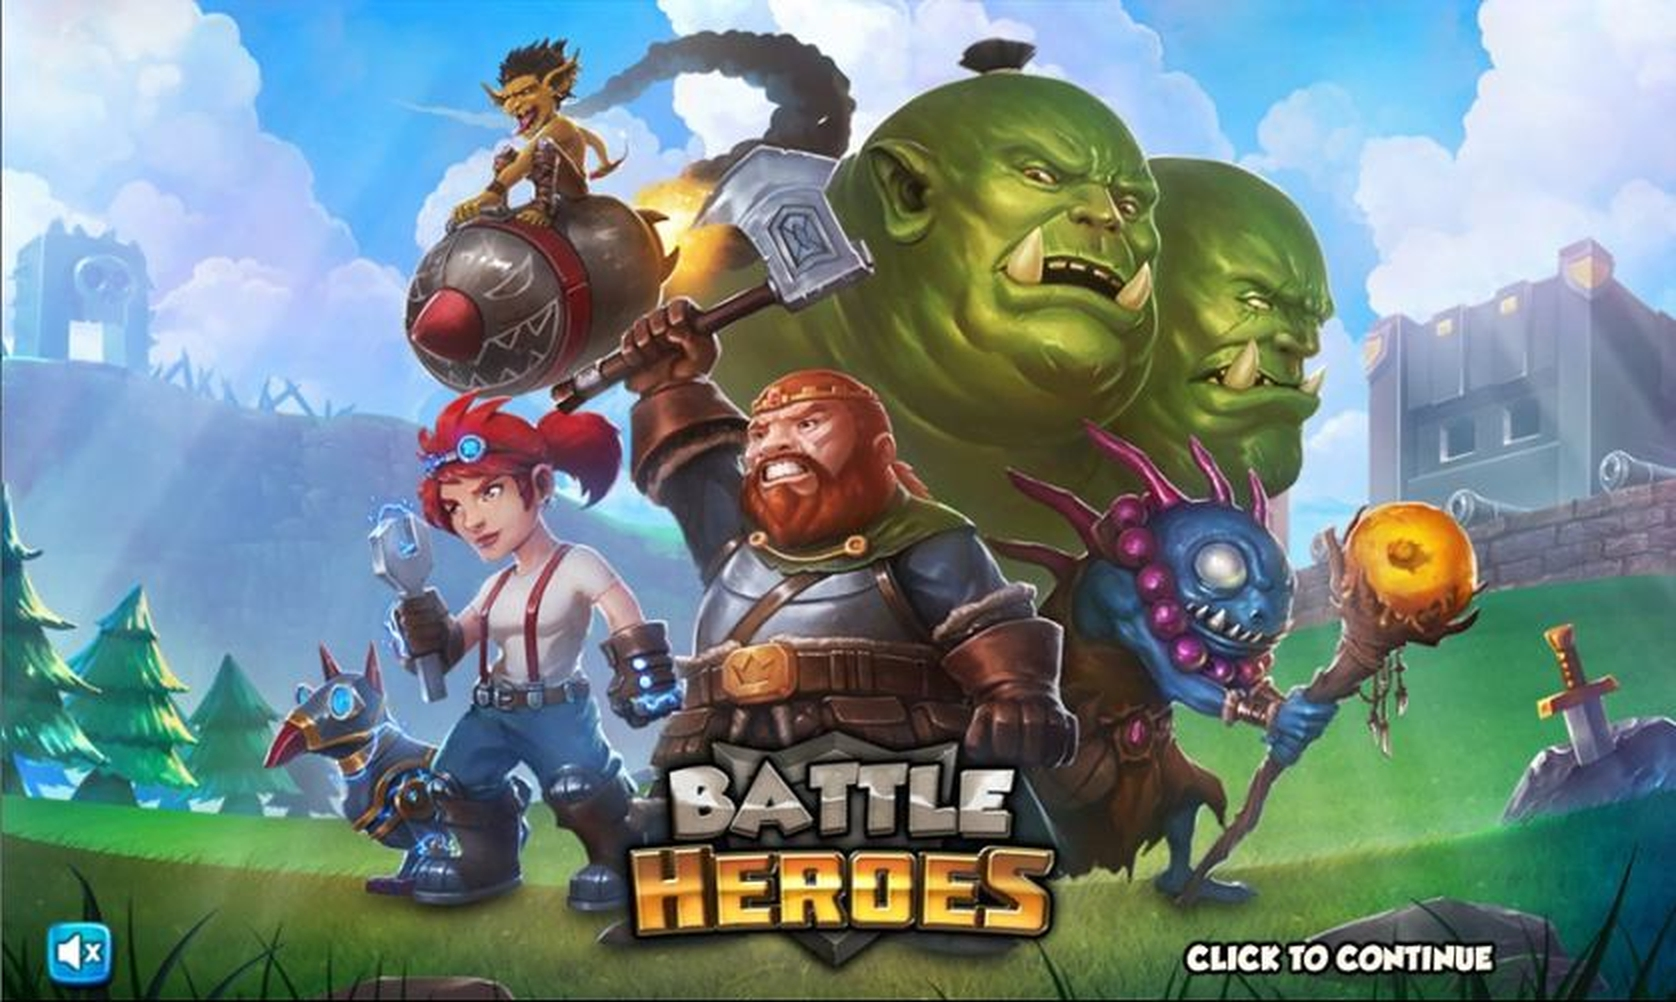 Win Money in Battle Heroes Free Slot Game by Swintt